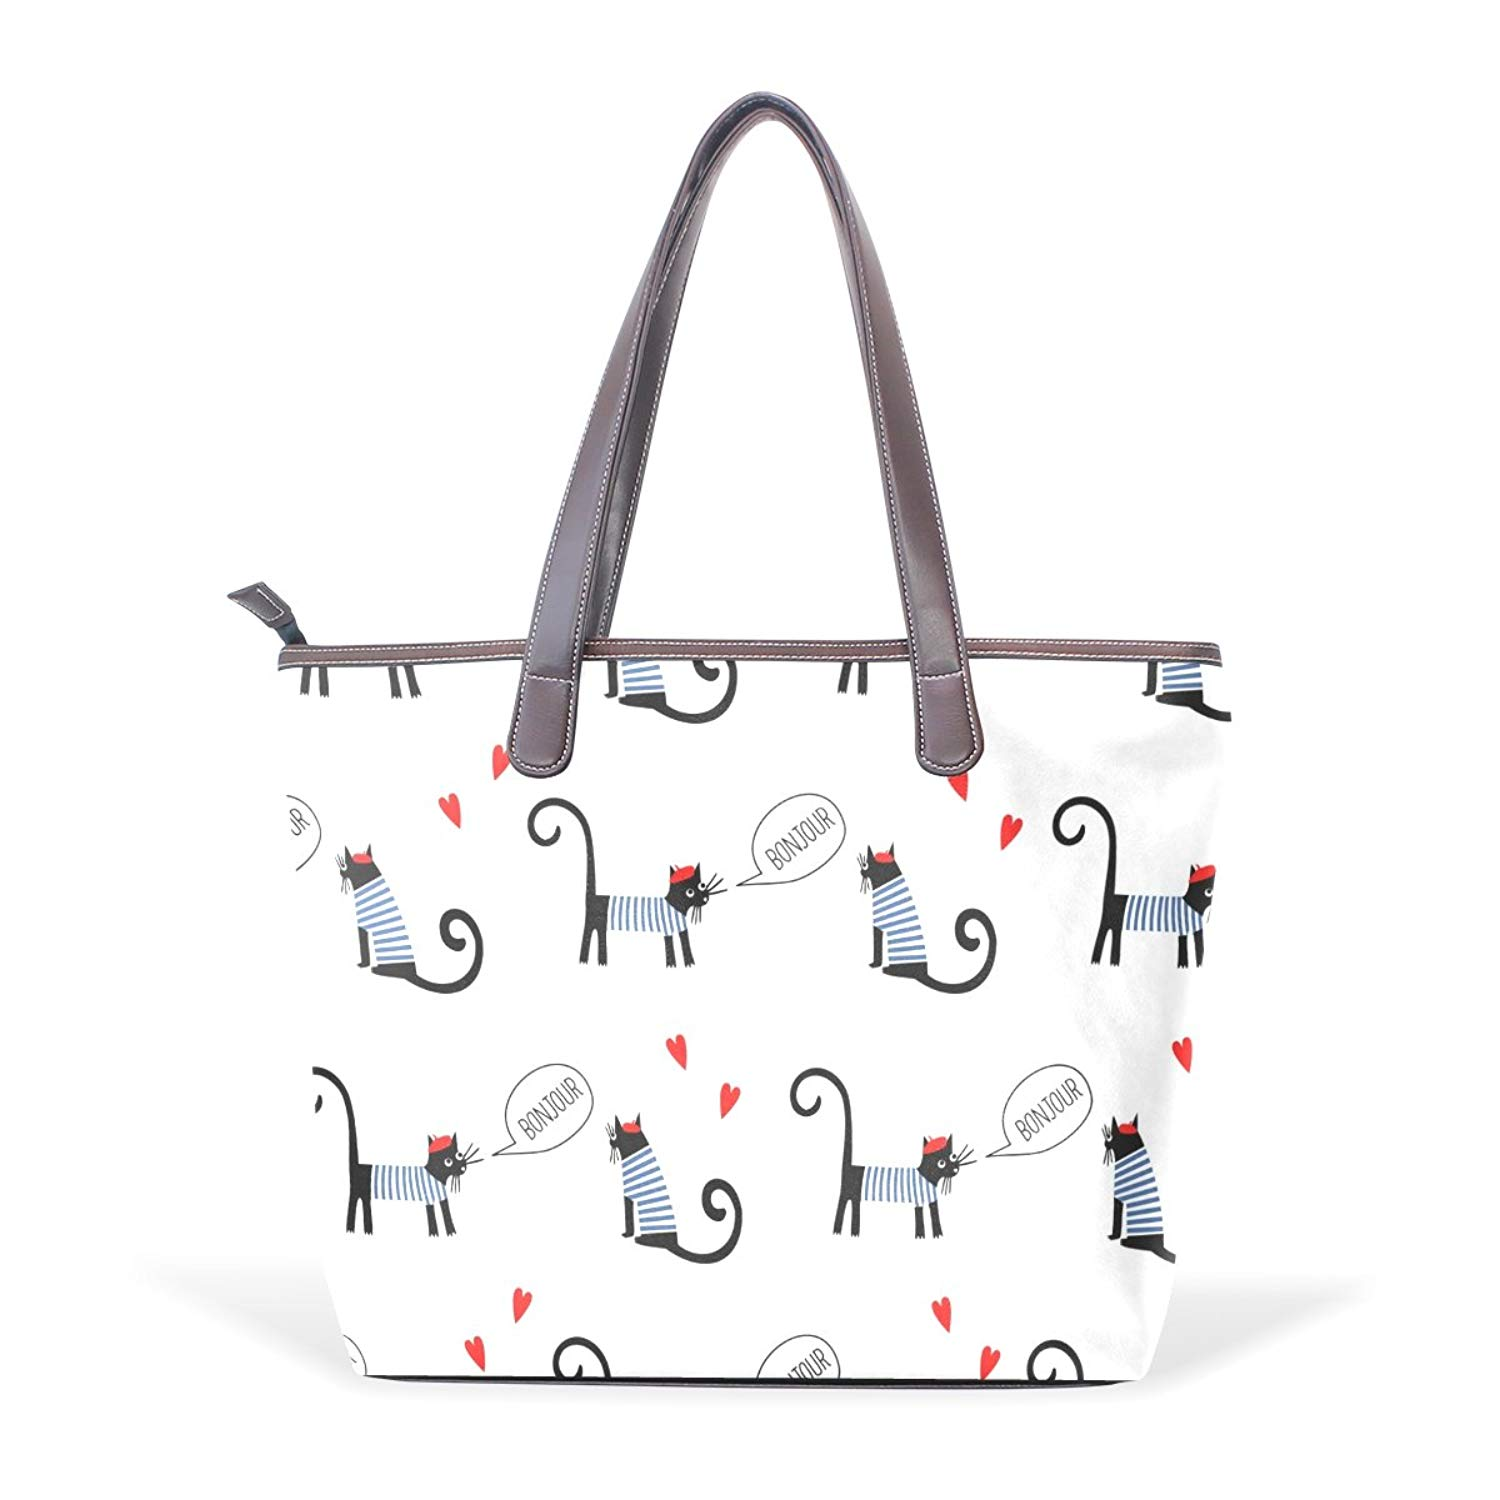 14a6176d1b Get Quotations · Dragon Sword French Style Cats Saying Bonjour Women  Handbags Hobo Shoulder Bags Tote PU Leather Handbags